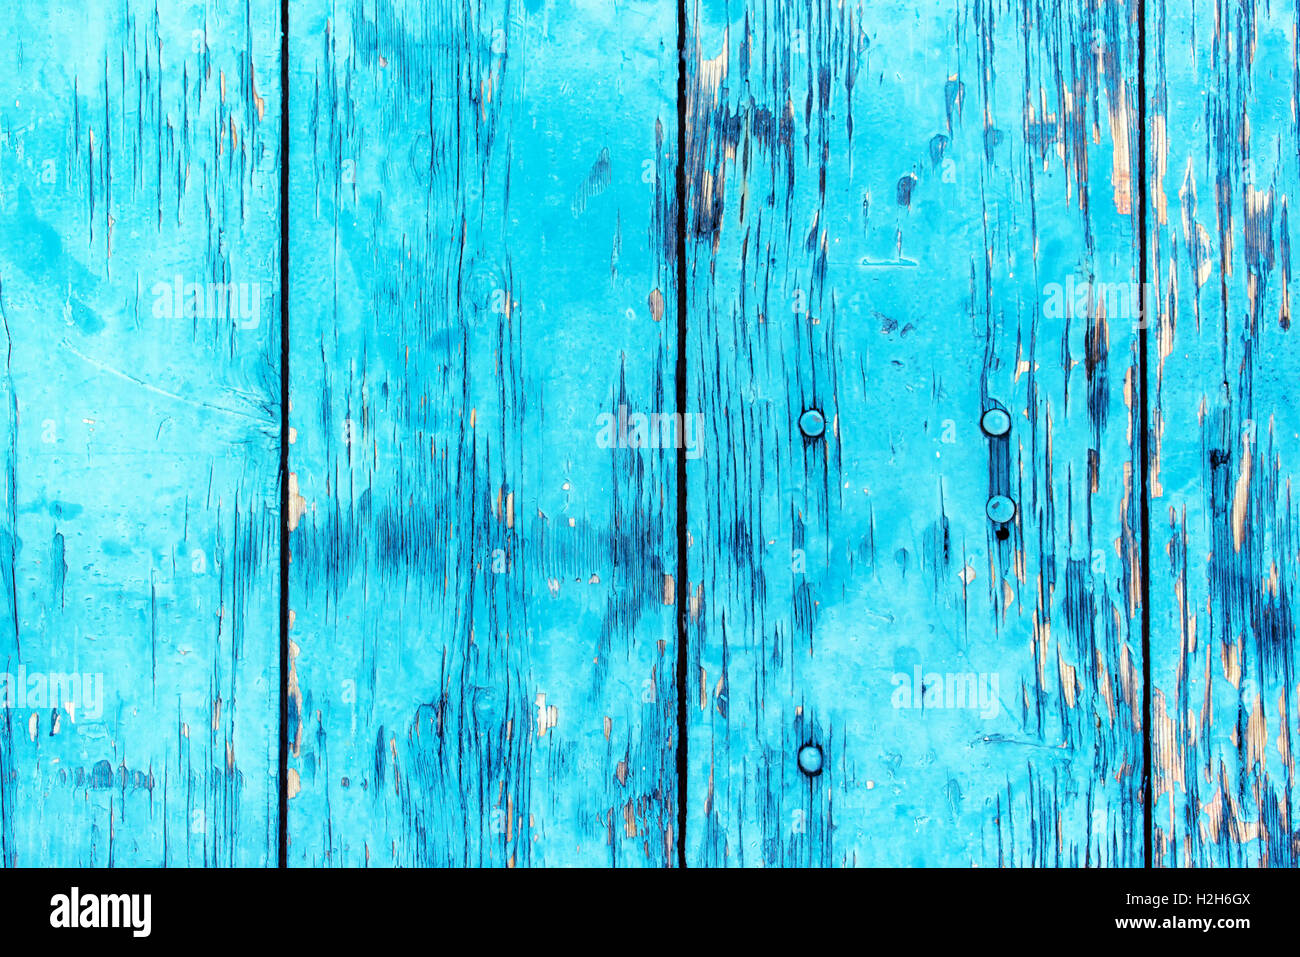 Blue planks background, abstract texture of rustic wooden boards - Stock Image